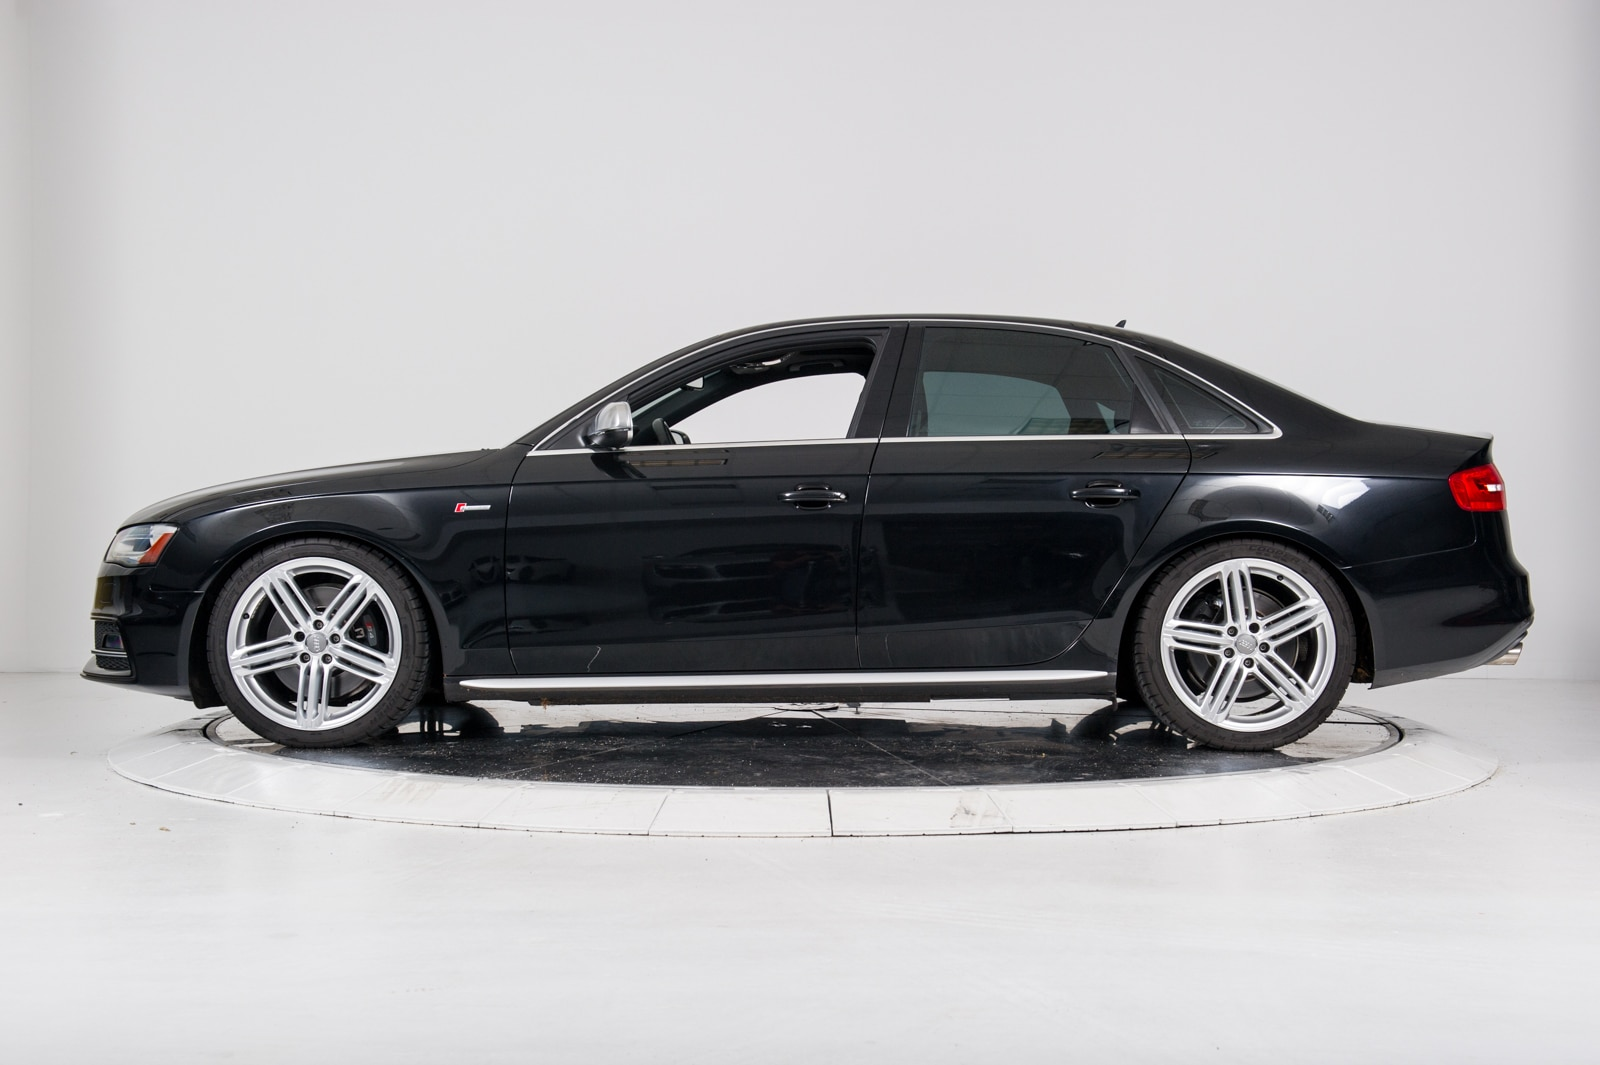 Used 2014 Audi S4 Quattro In Black For Sale In Nyc Vin Waudgafl4ea013871